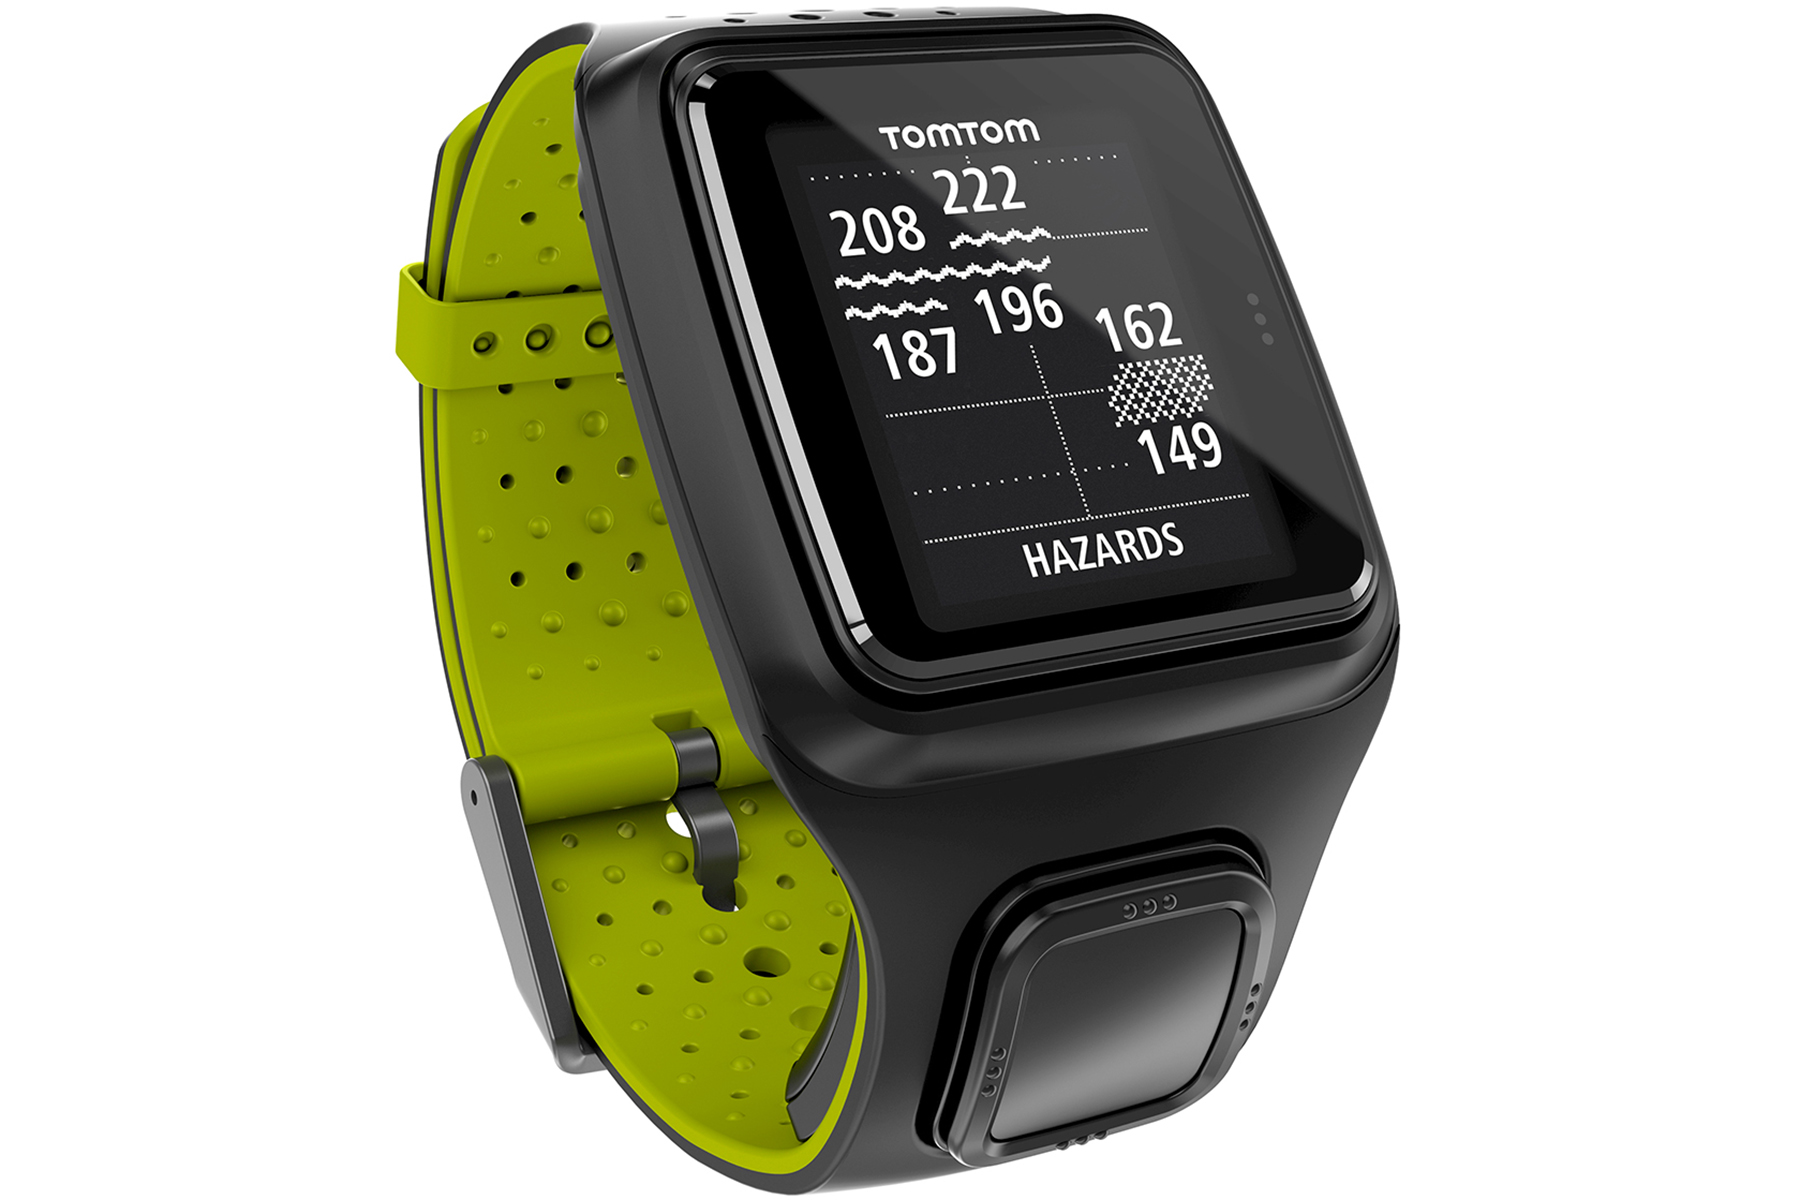 tomtom golfer limited edition gps watch from american golf. Black Bedroom Furniture Sets. Home Design Ideas